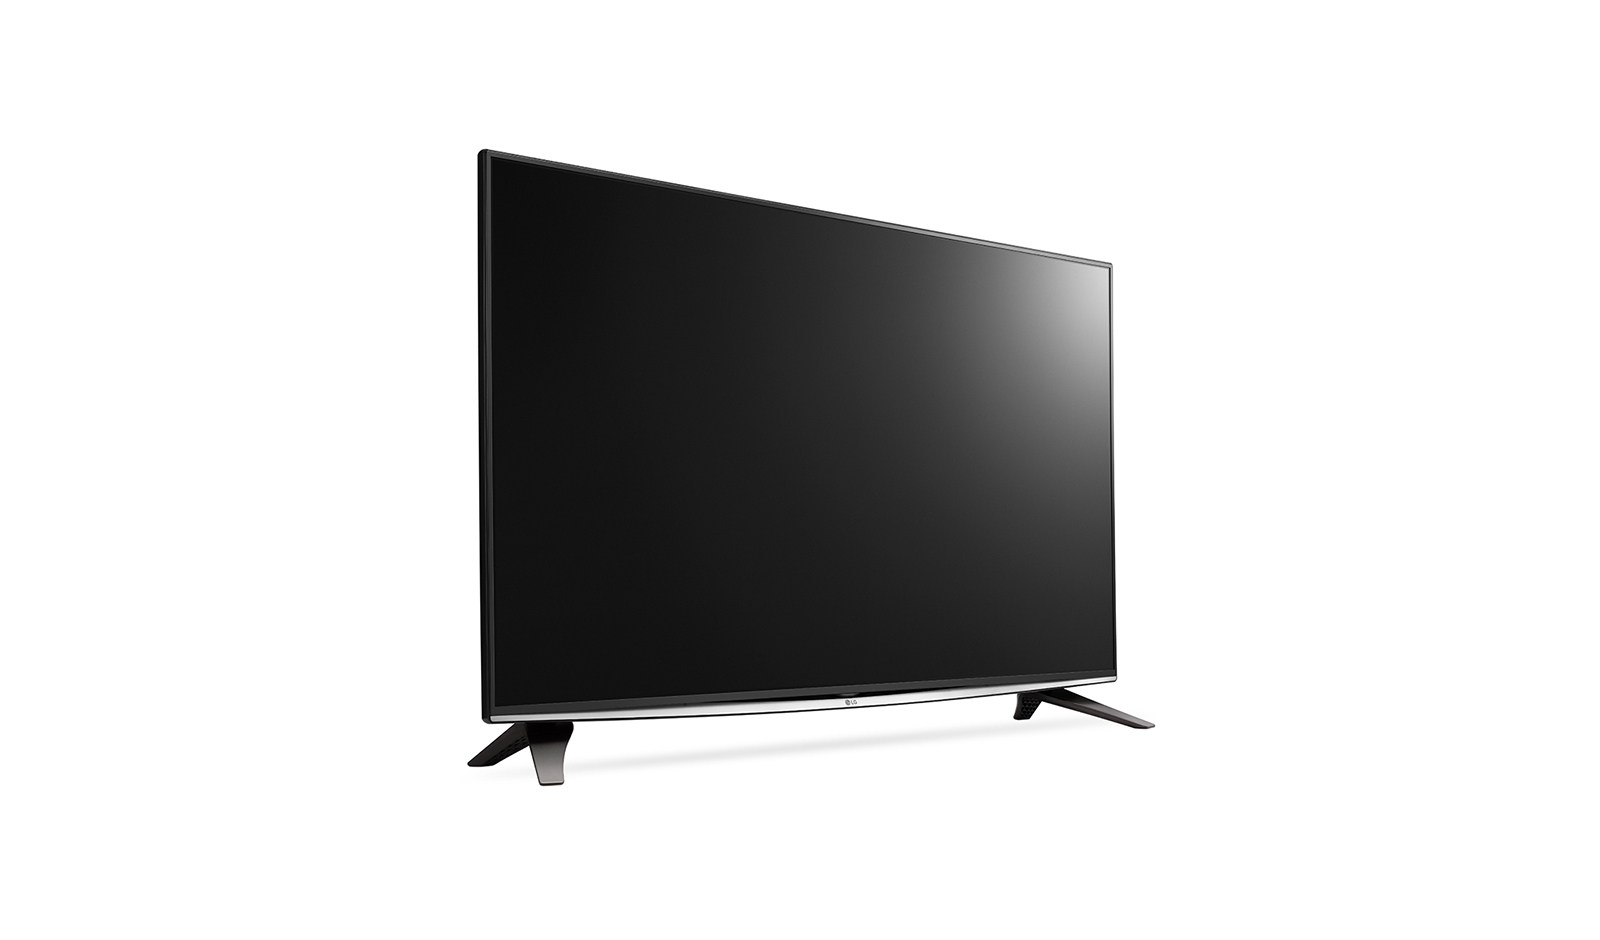 50uh635v 4k Ultra Hd Tv | Lg Electronics Türkiye With Kai 63 Inch Tv Stands (View 16 of 30)